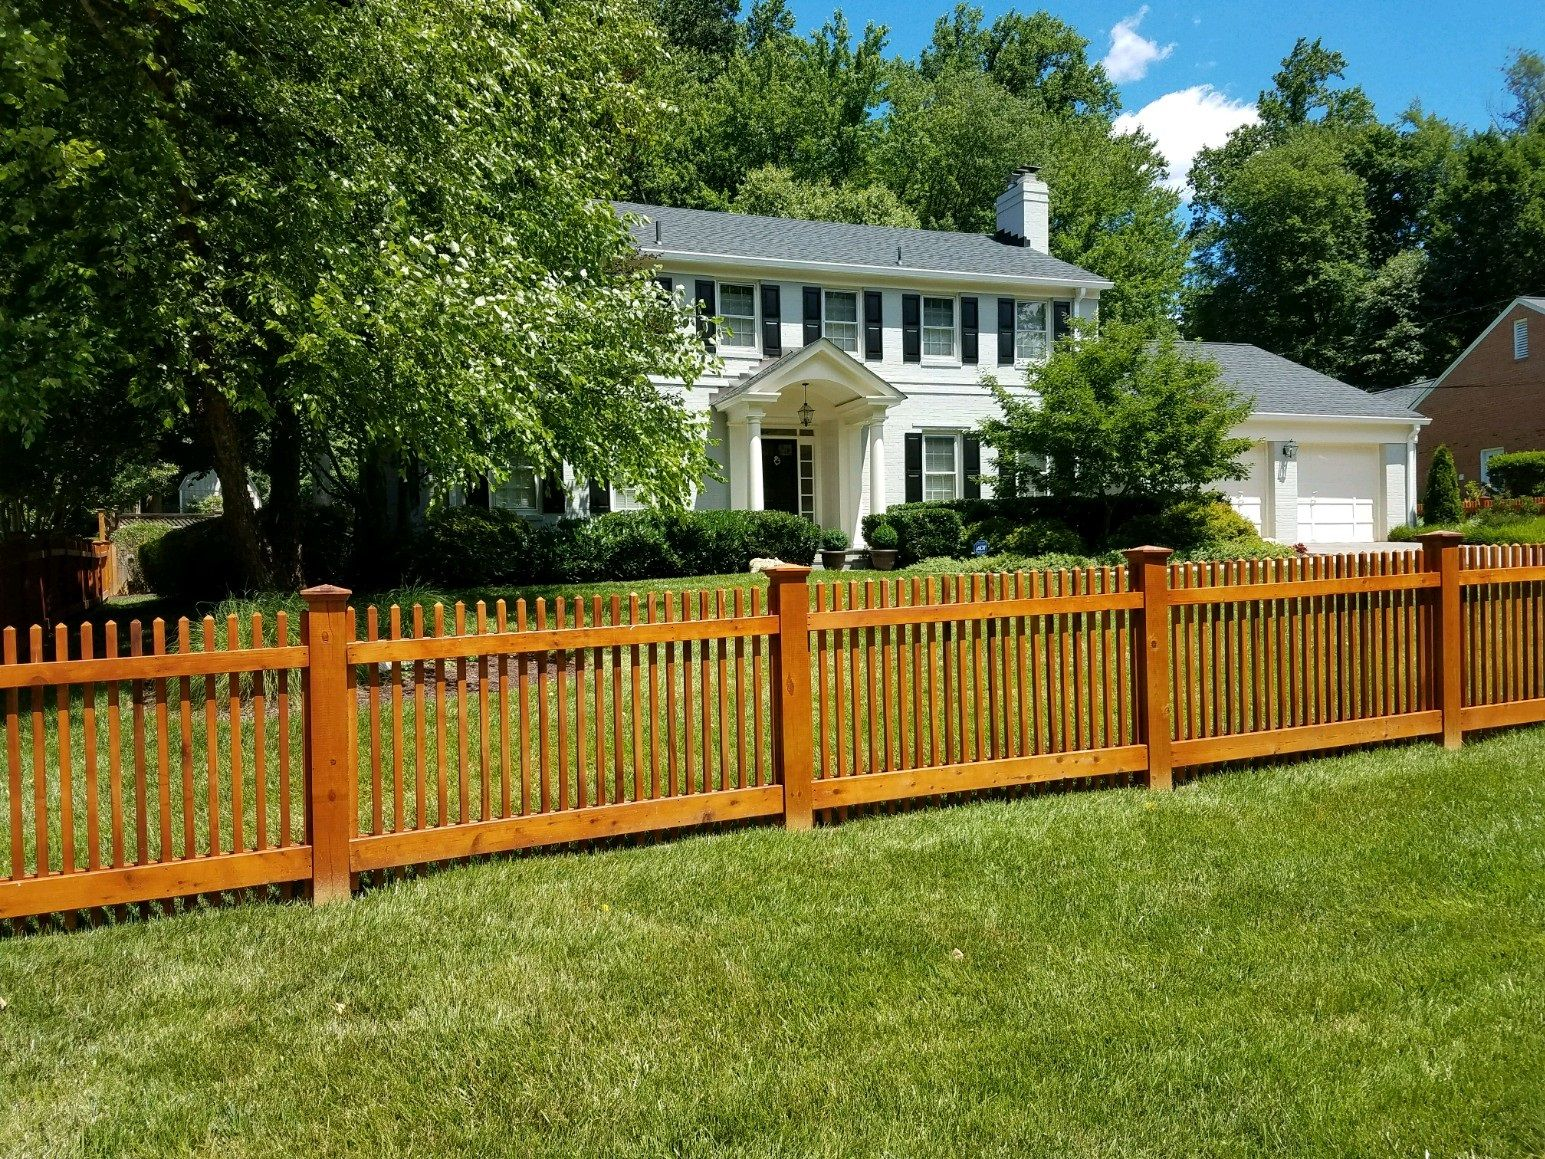 Stained Wood Poolesville Picket Fence Patio Fence Picket Fence Wood Picket Fence